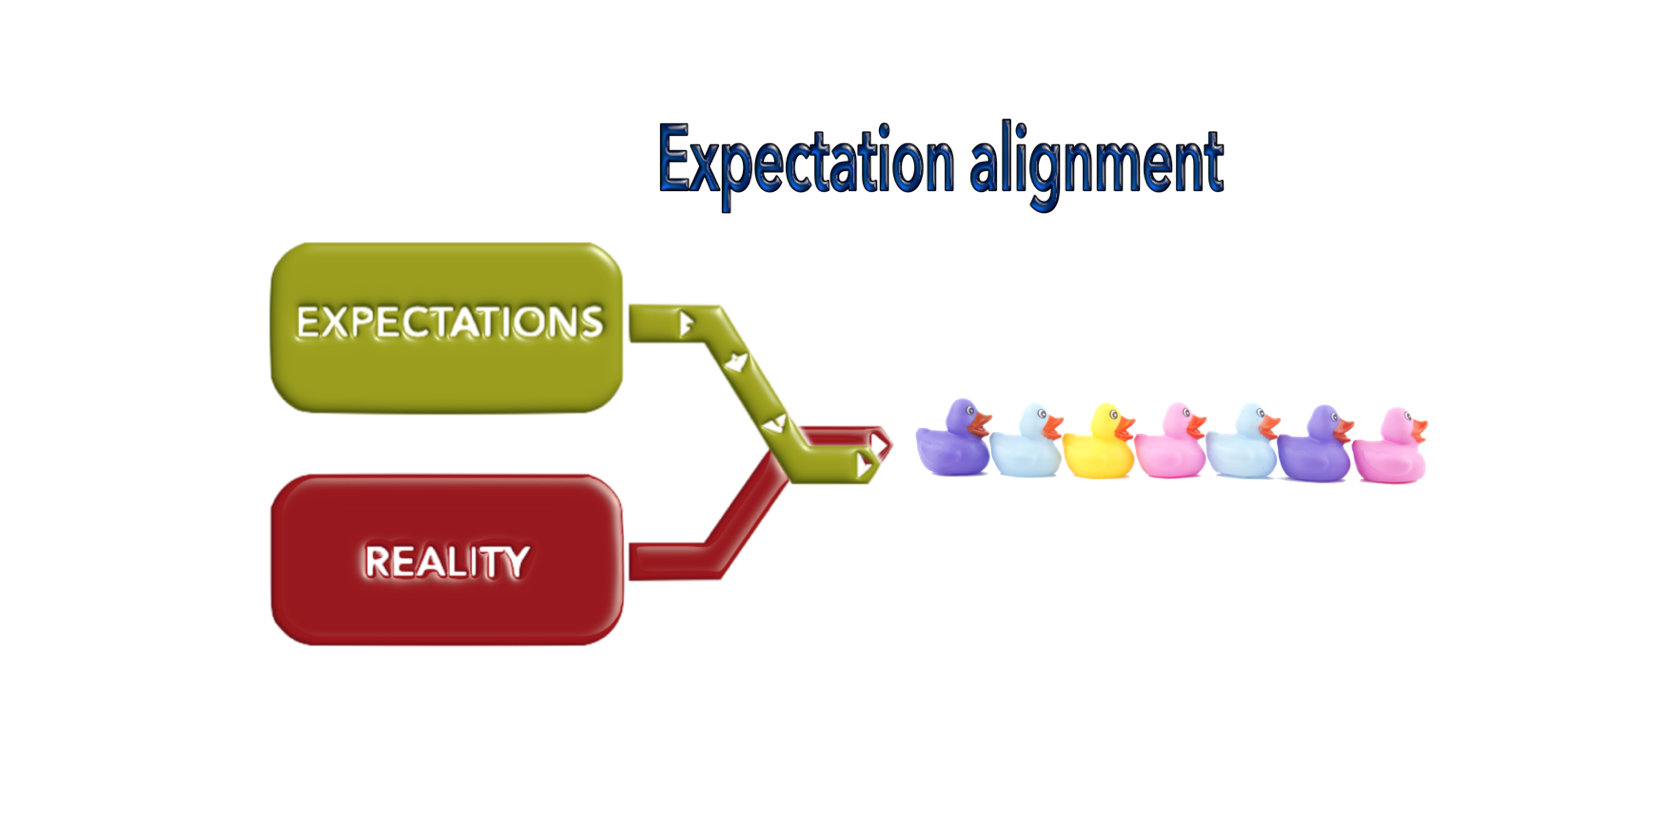 A great employee experience requires frequent expectation alignment